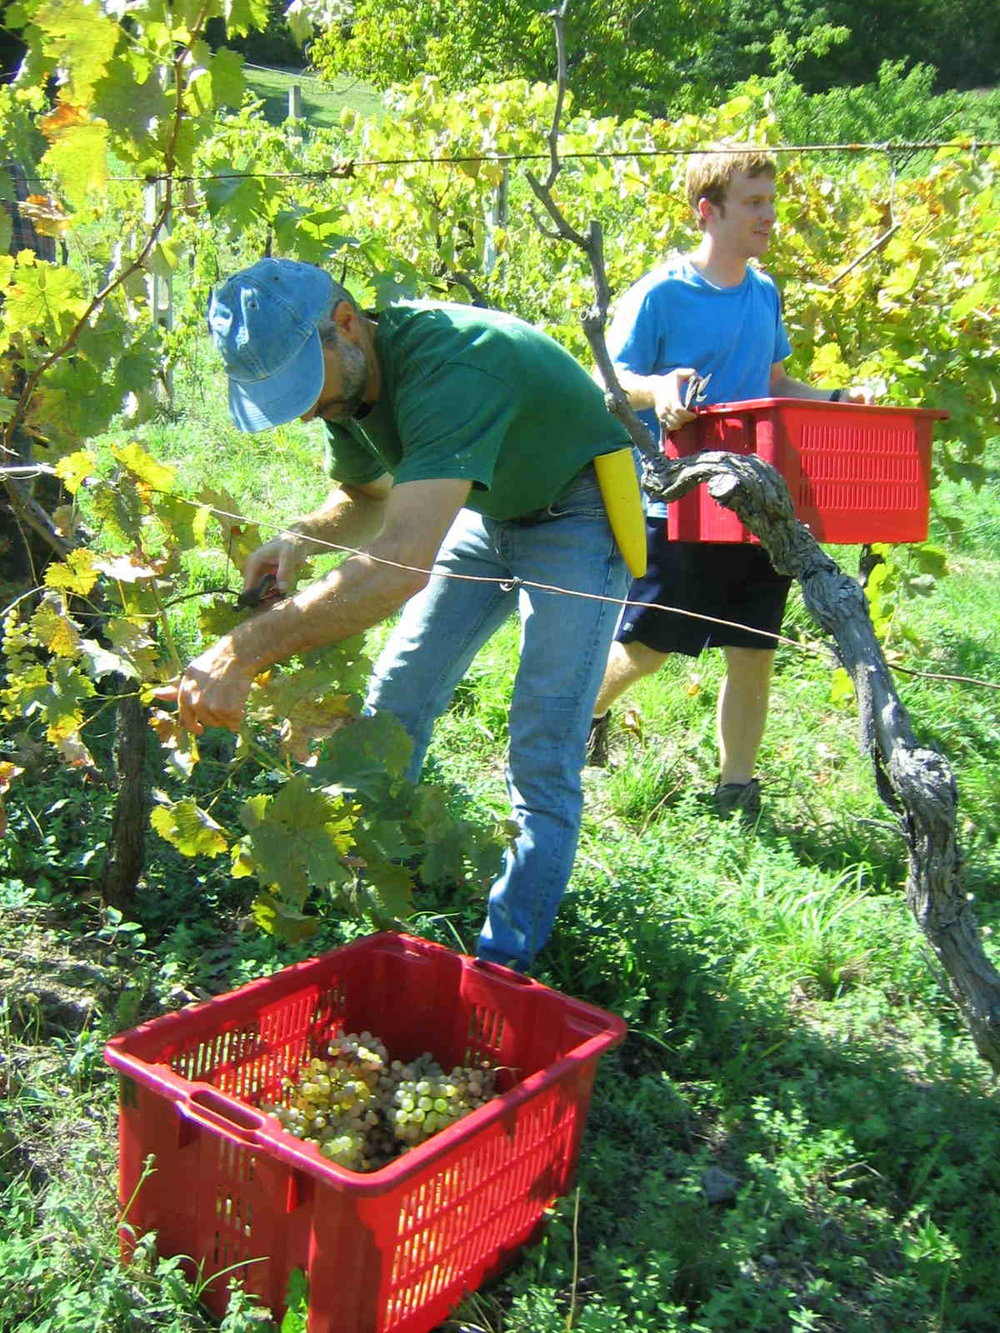 harvestinggrapes.jpg